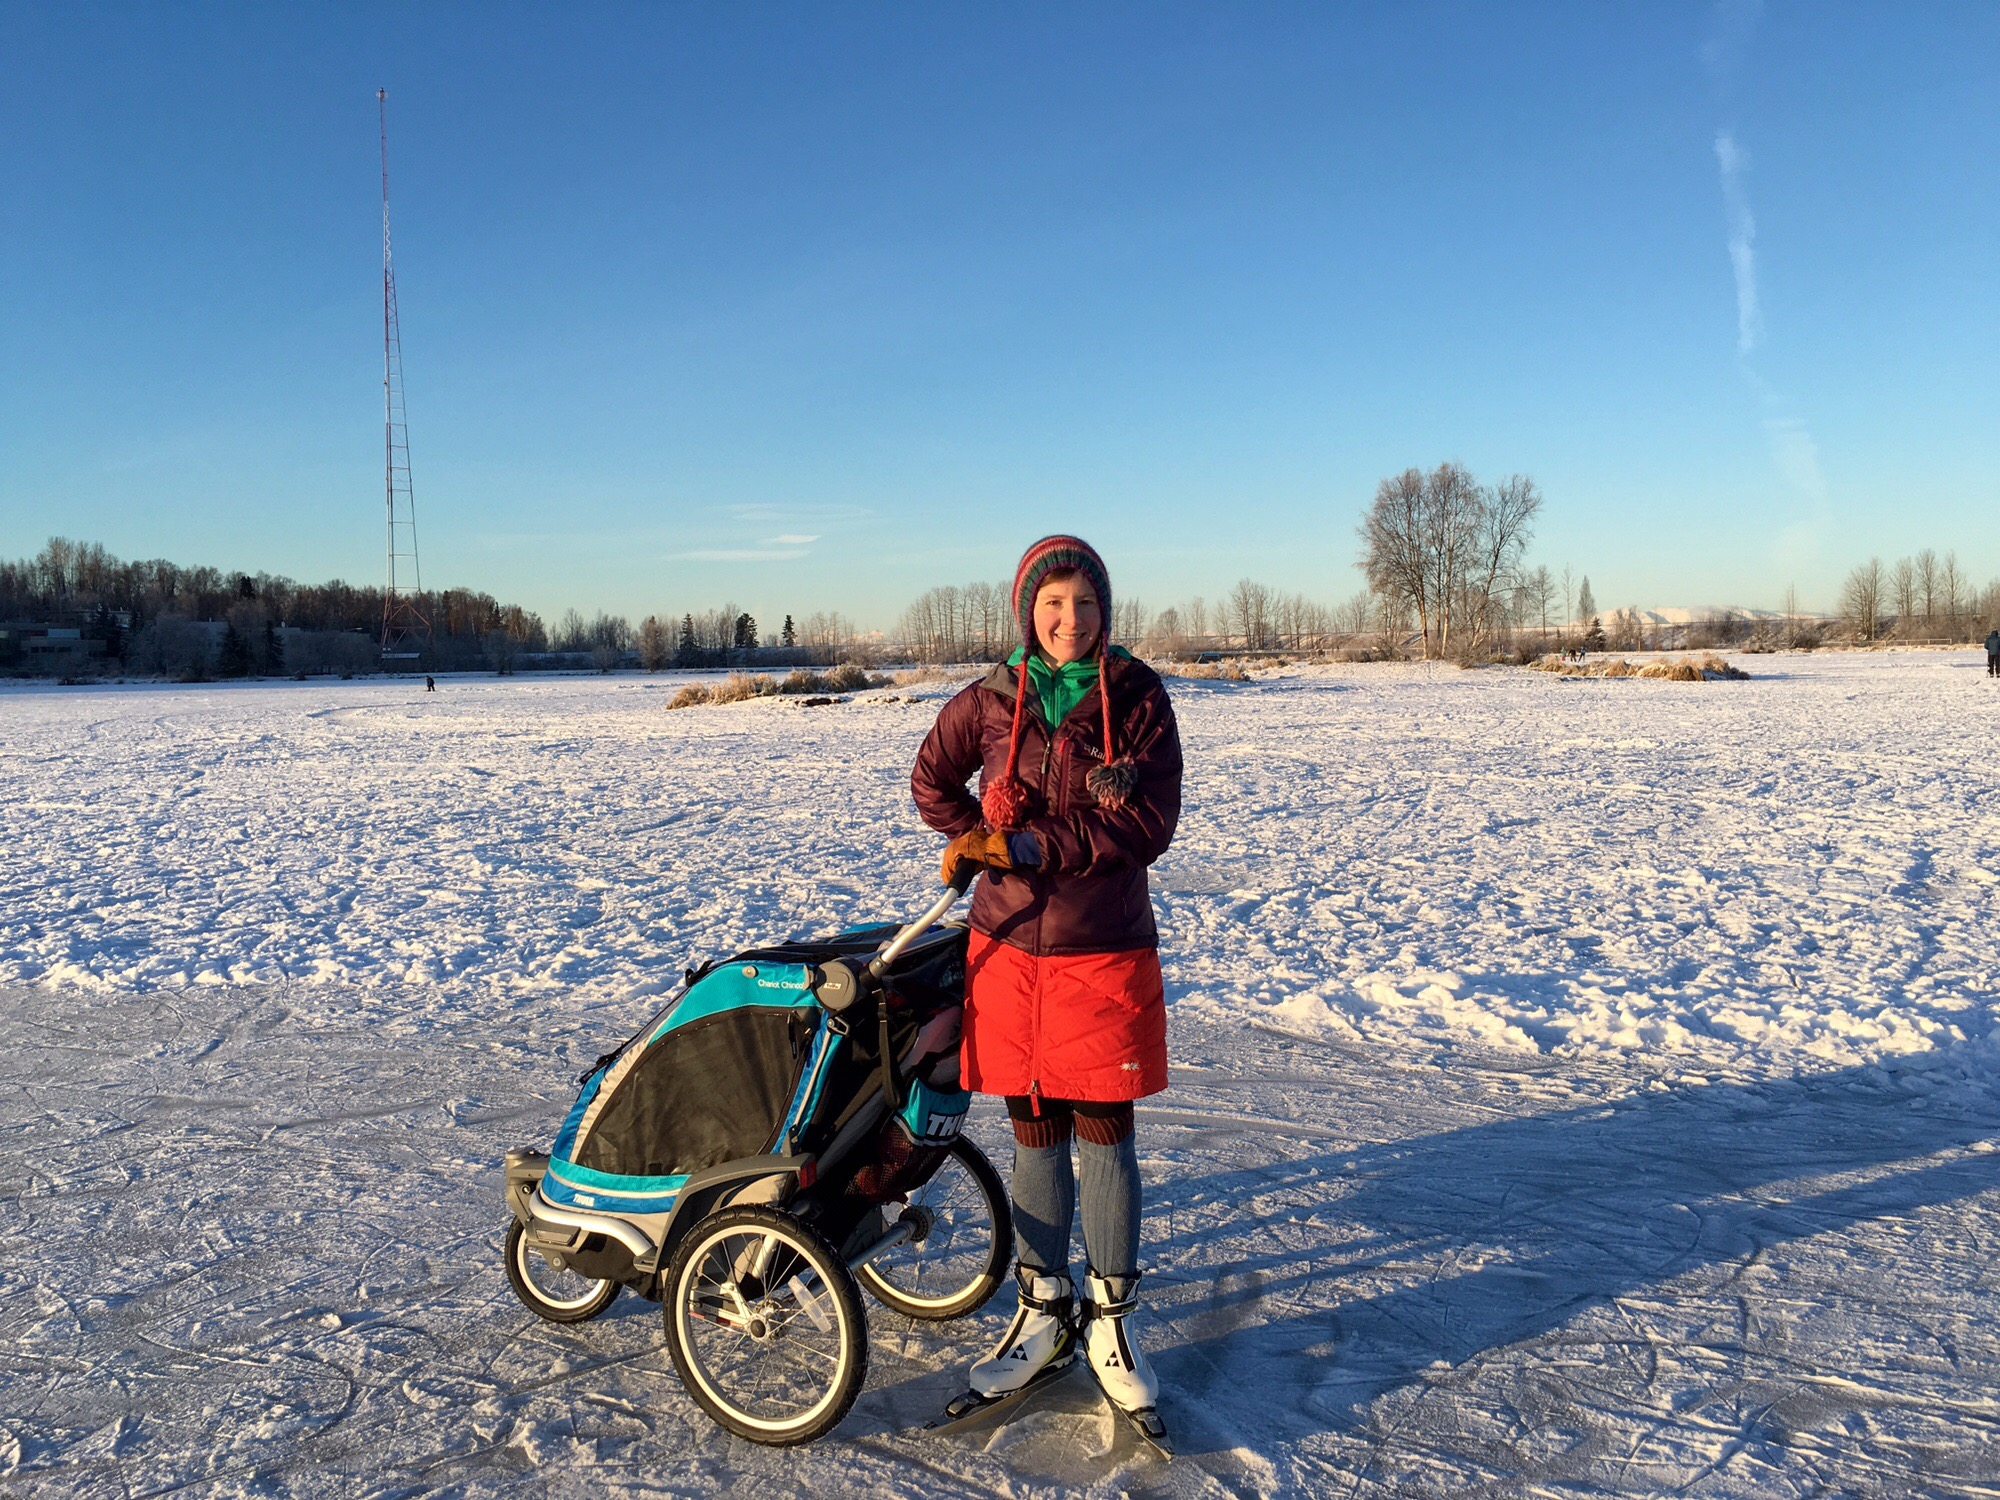 Out on the ice, skating, stroller in hand.